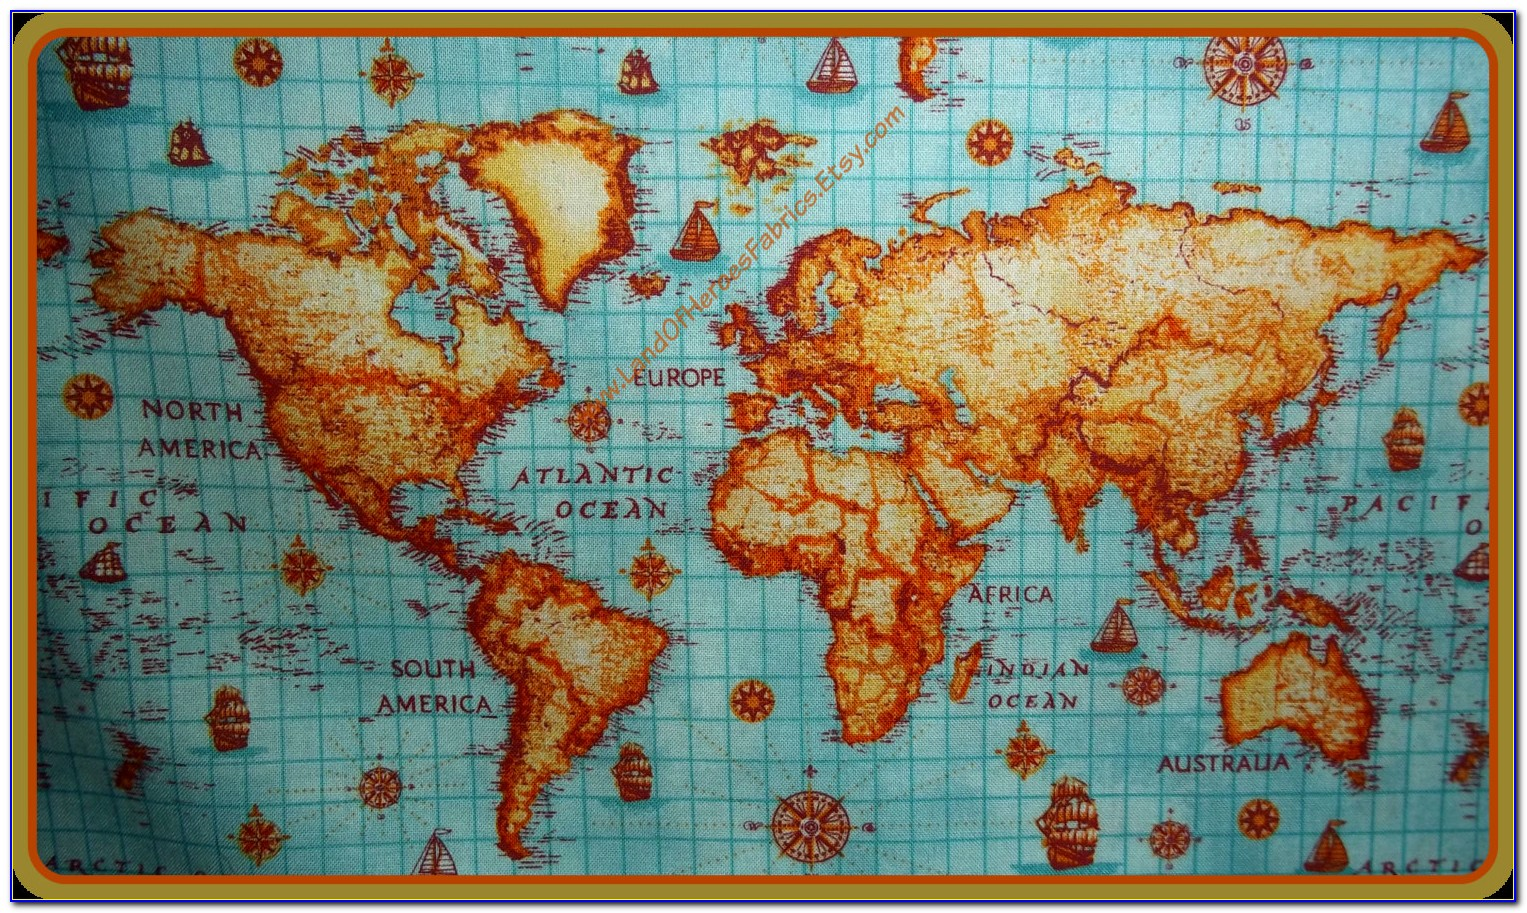 Vintage World Map Fabric By The Yard